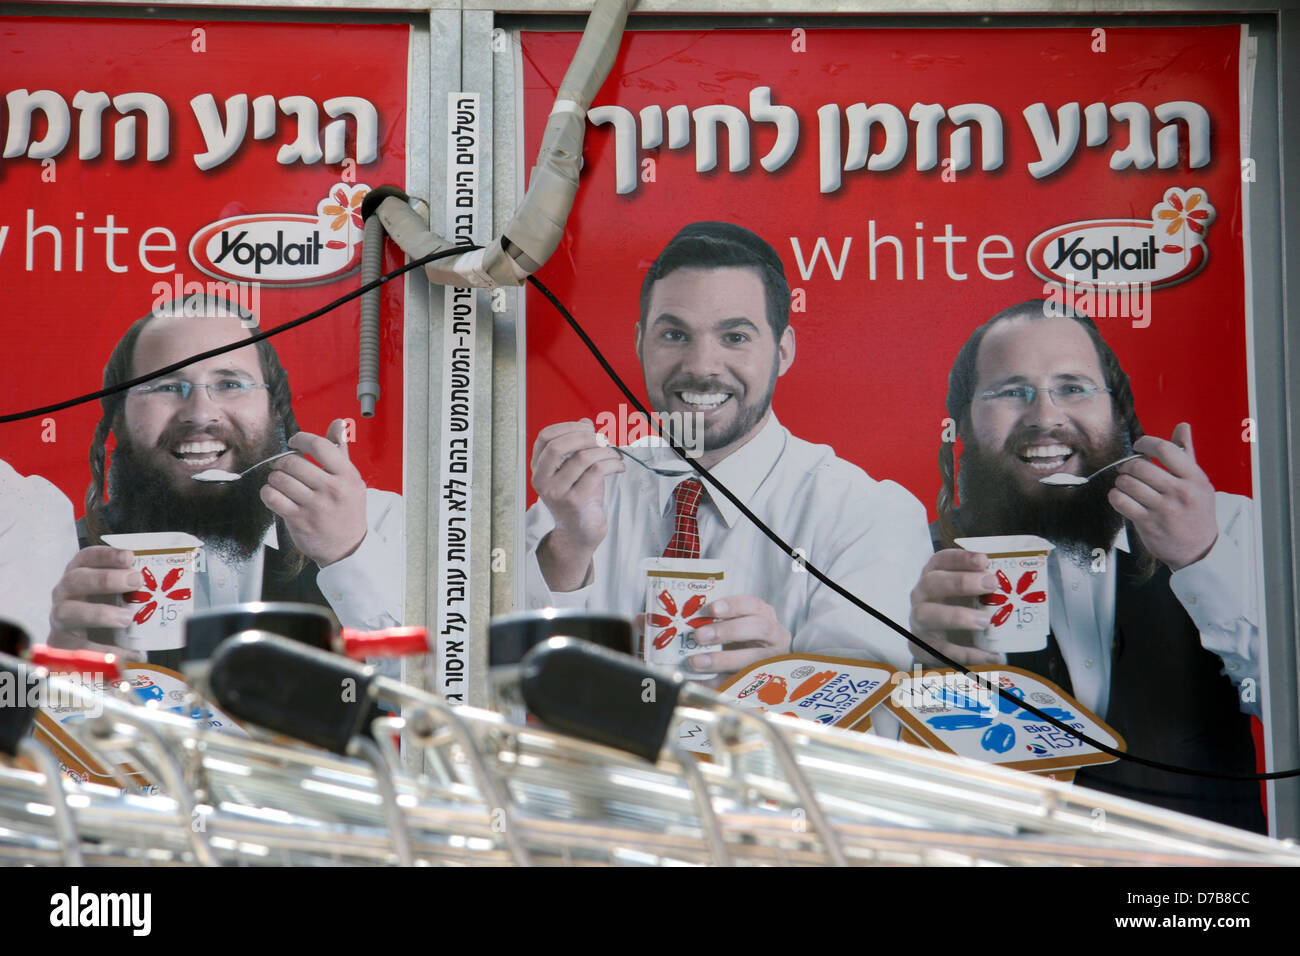 advertising for the religious population (2005) - Stock Image